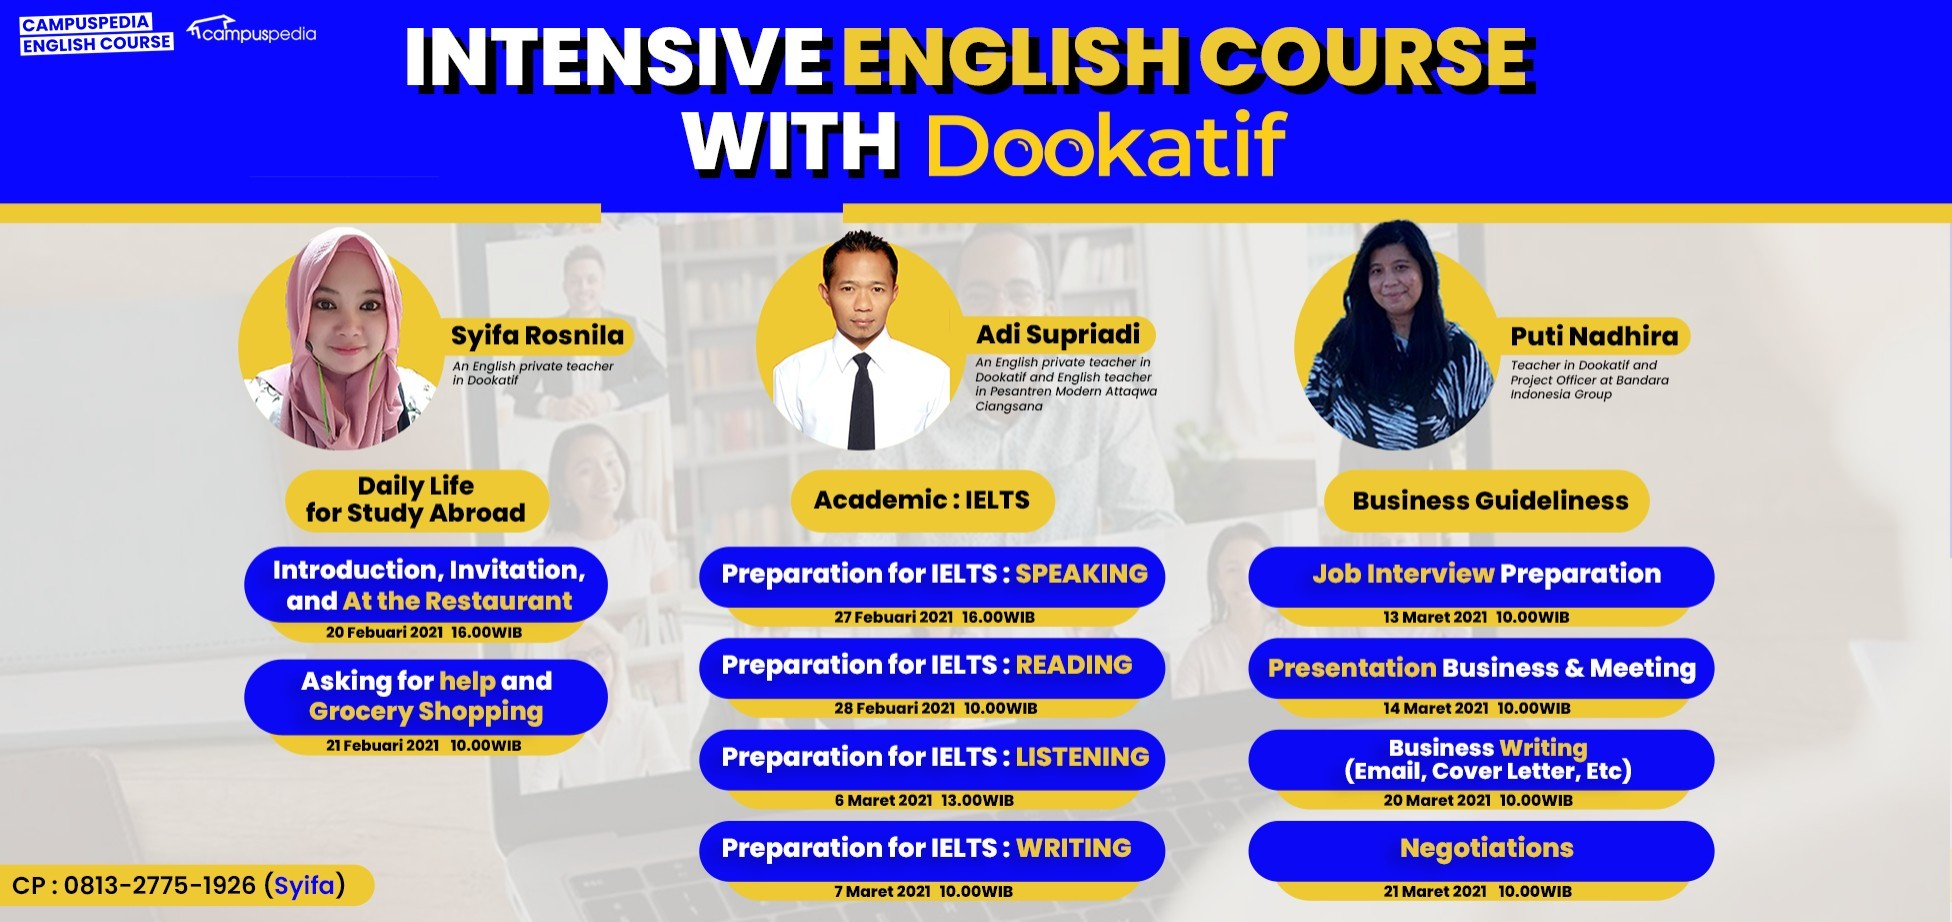 Intensive English Course with Dookatif